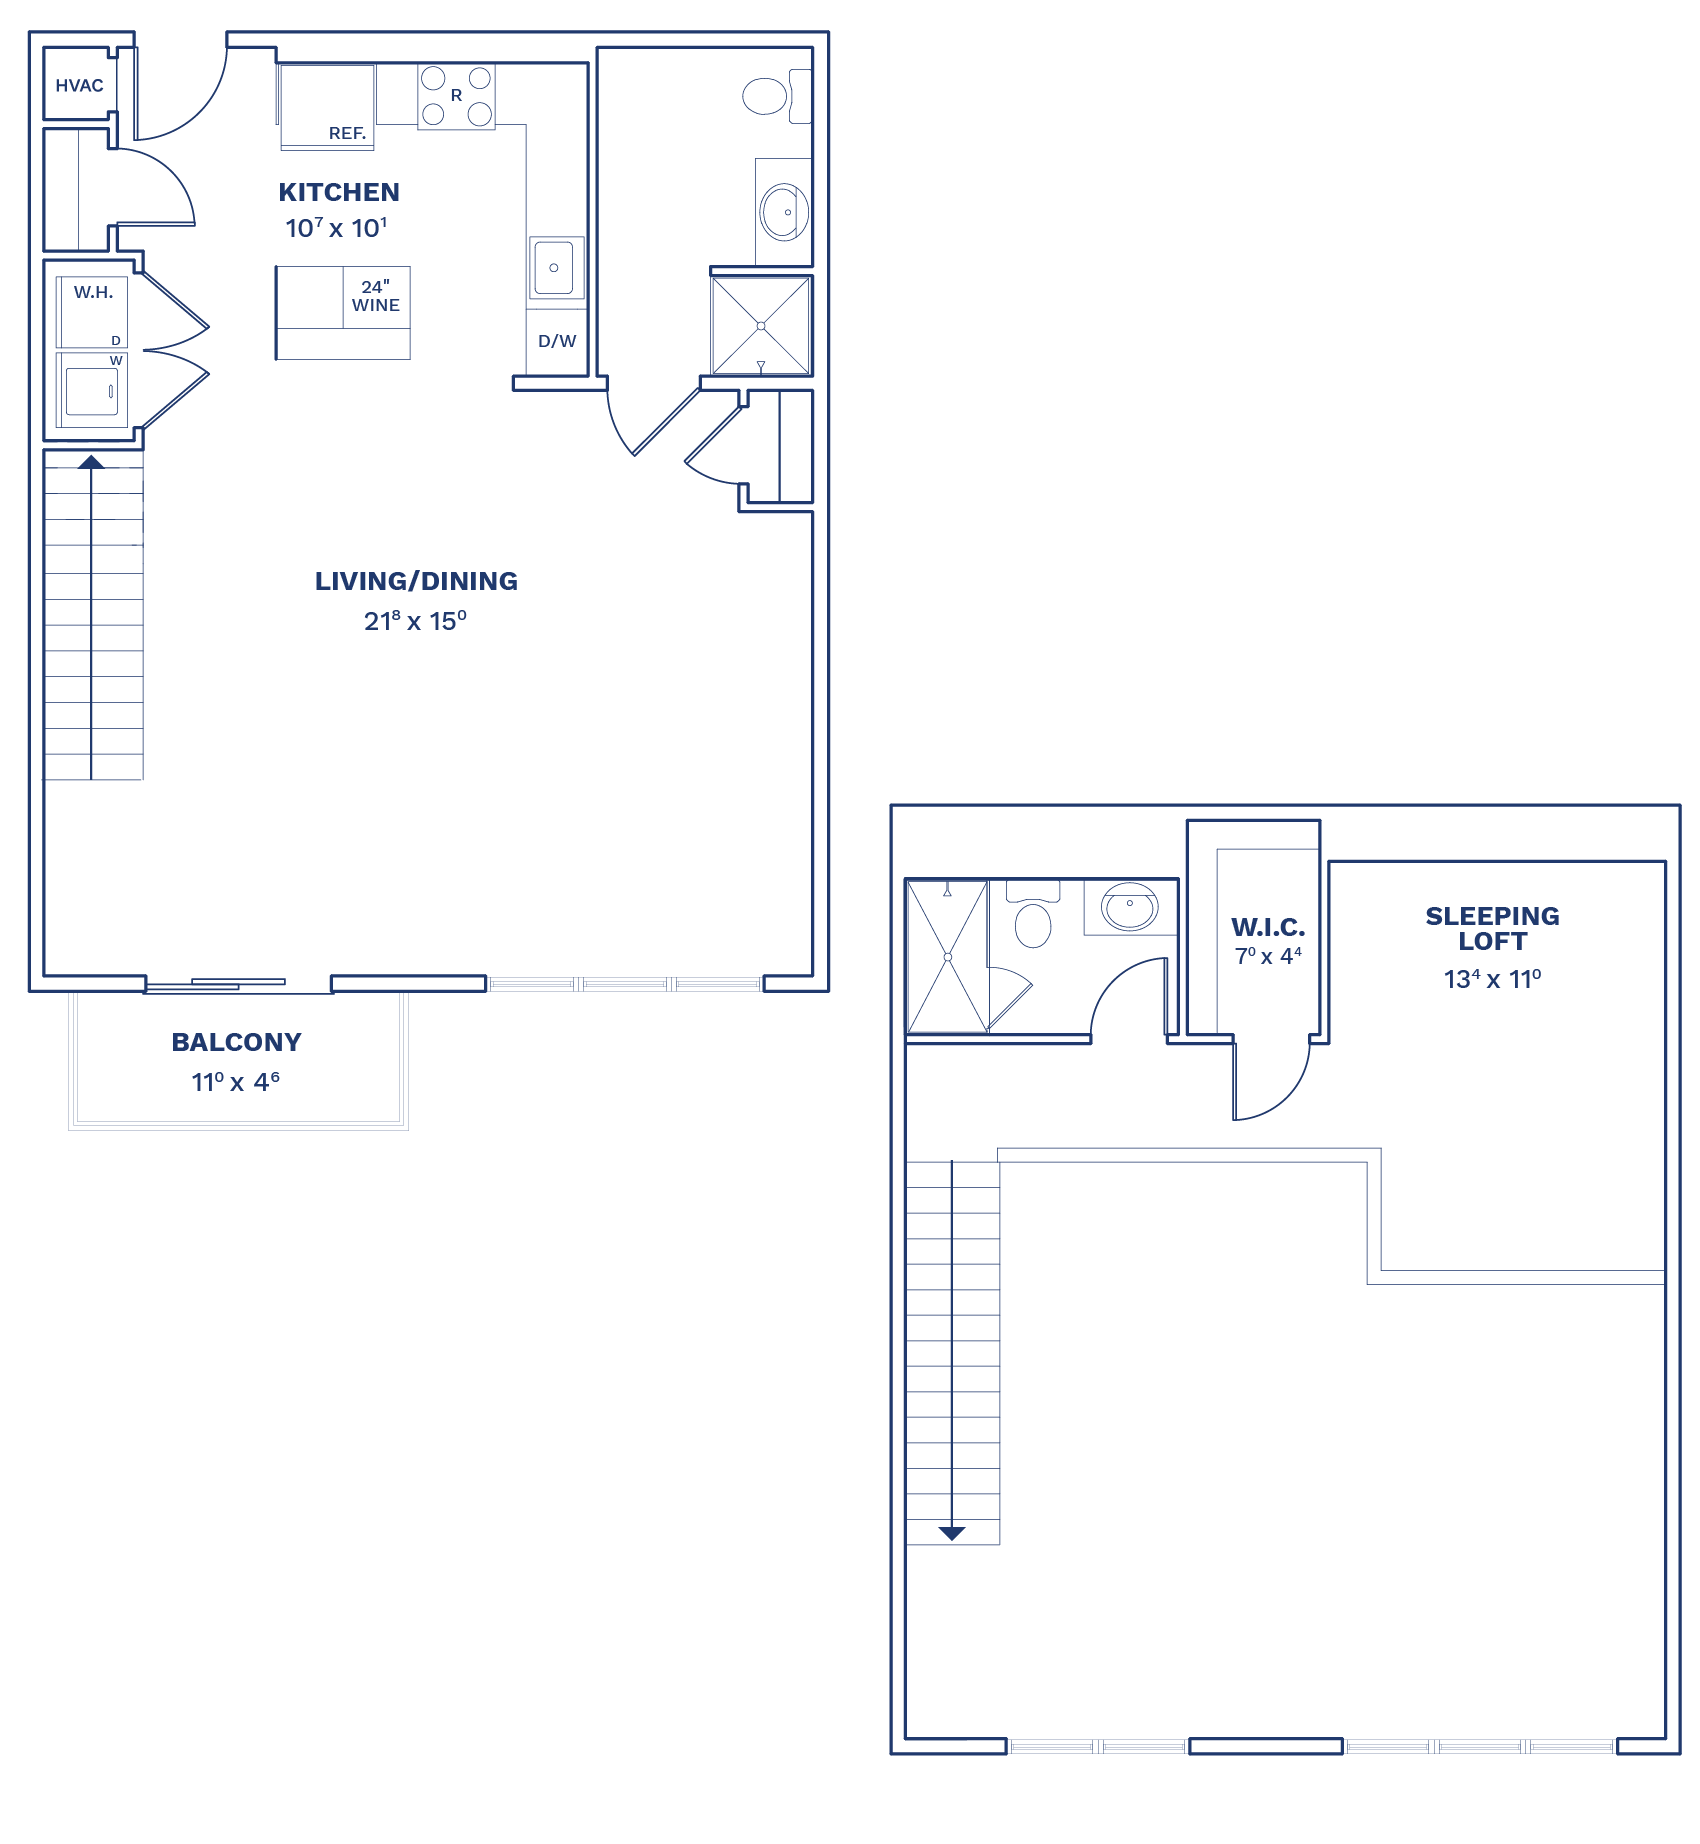 Floorplan of Unit A2.1 Loft